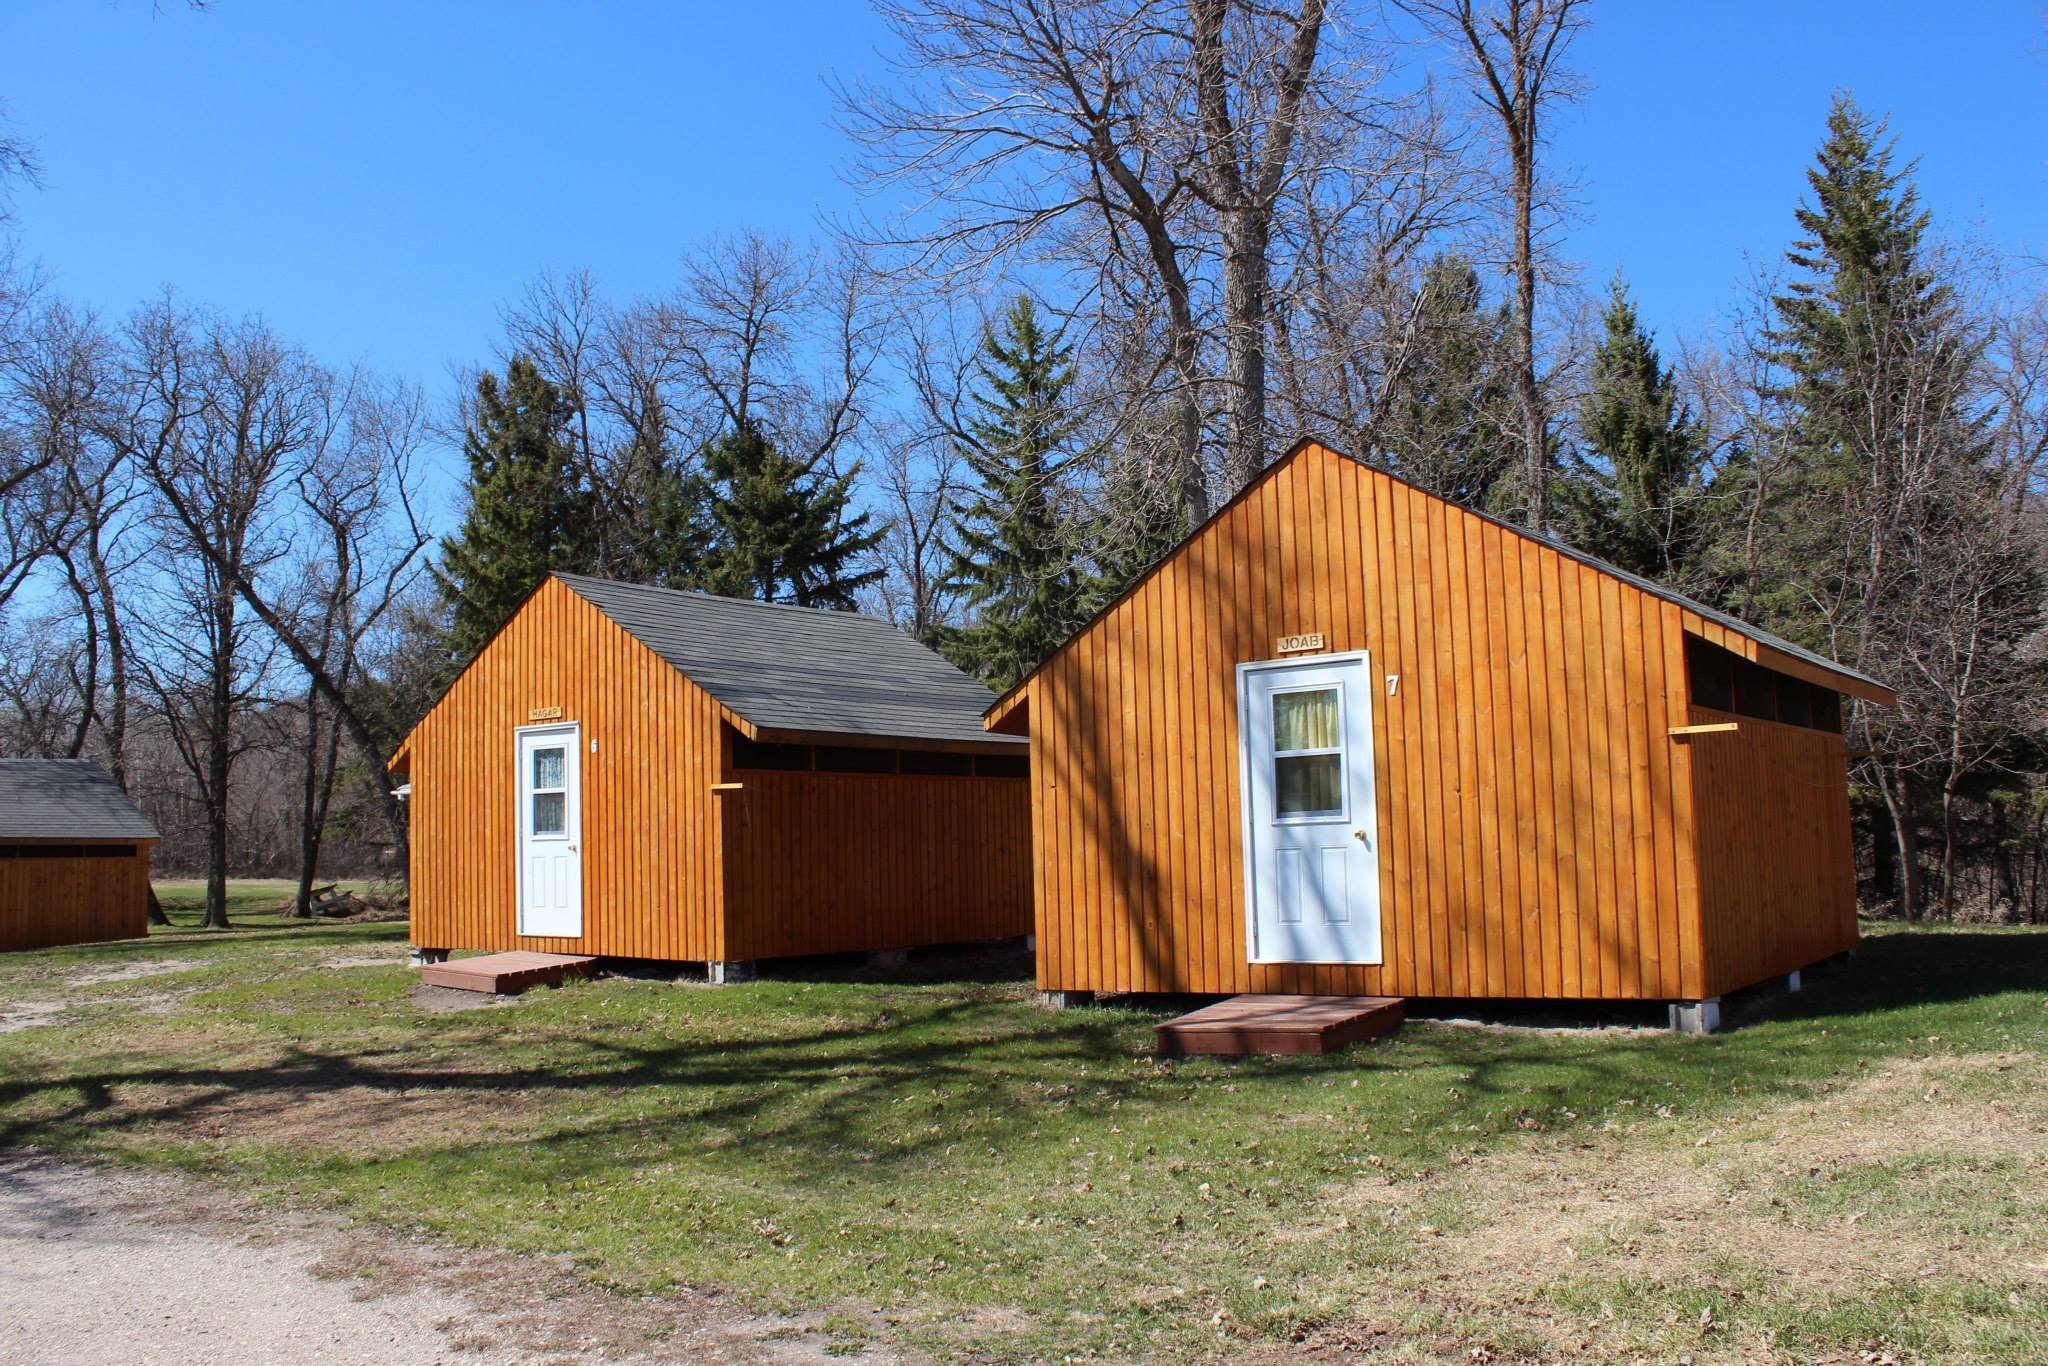 Cabins 6 & 7